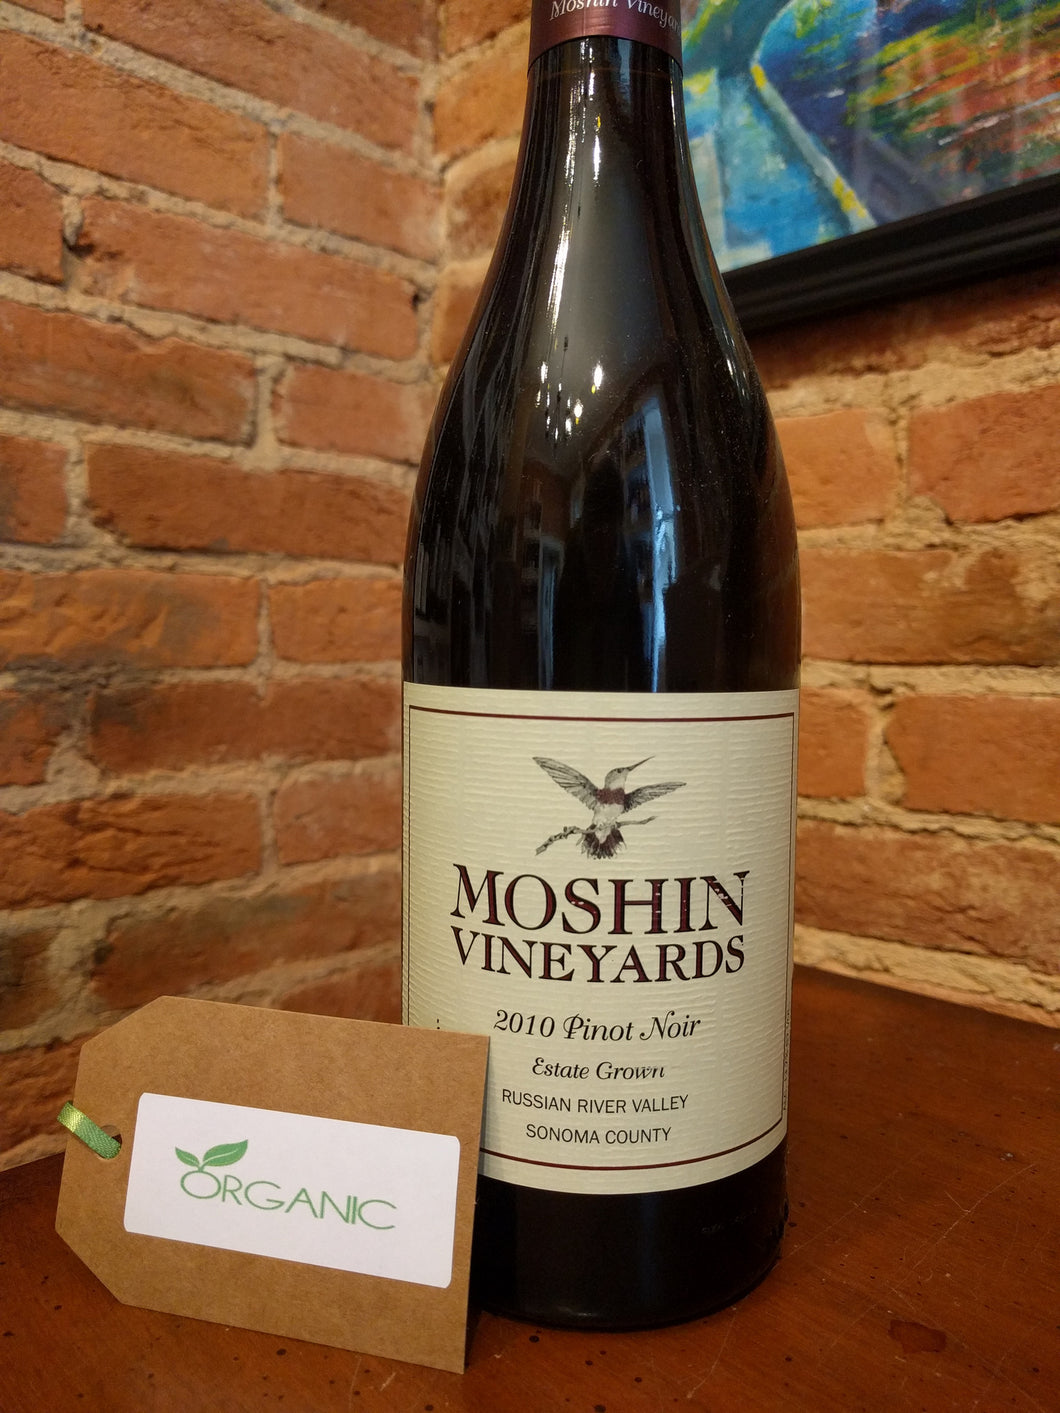 Moshin Vineyards, Pinot Noir (2010)